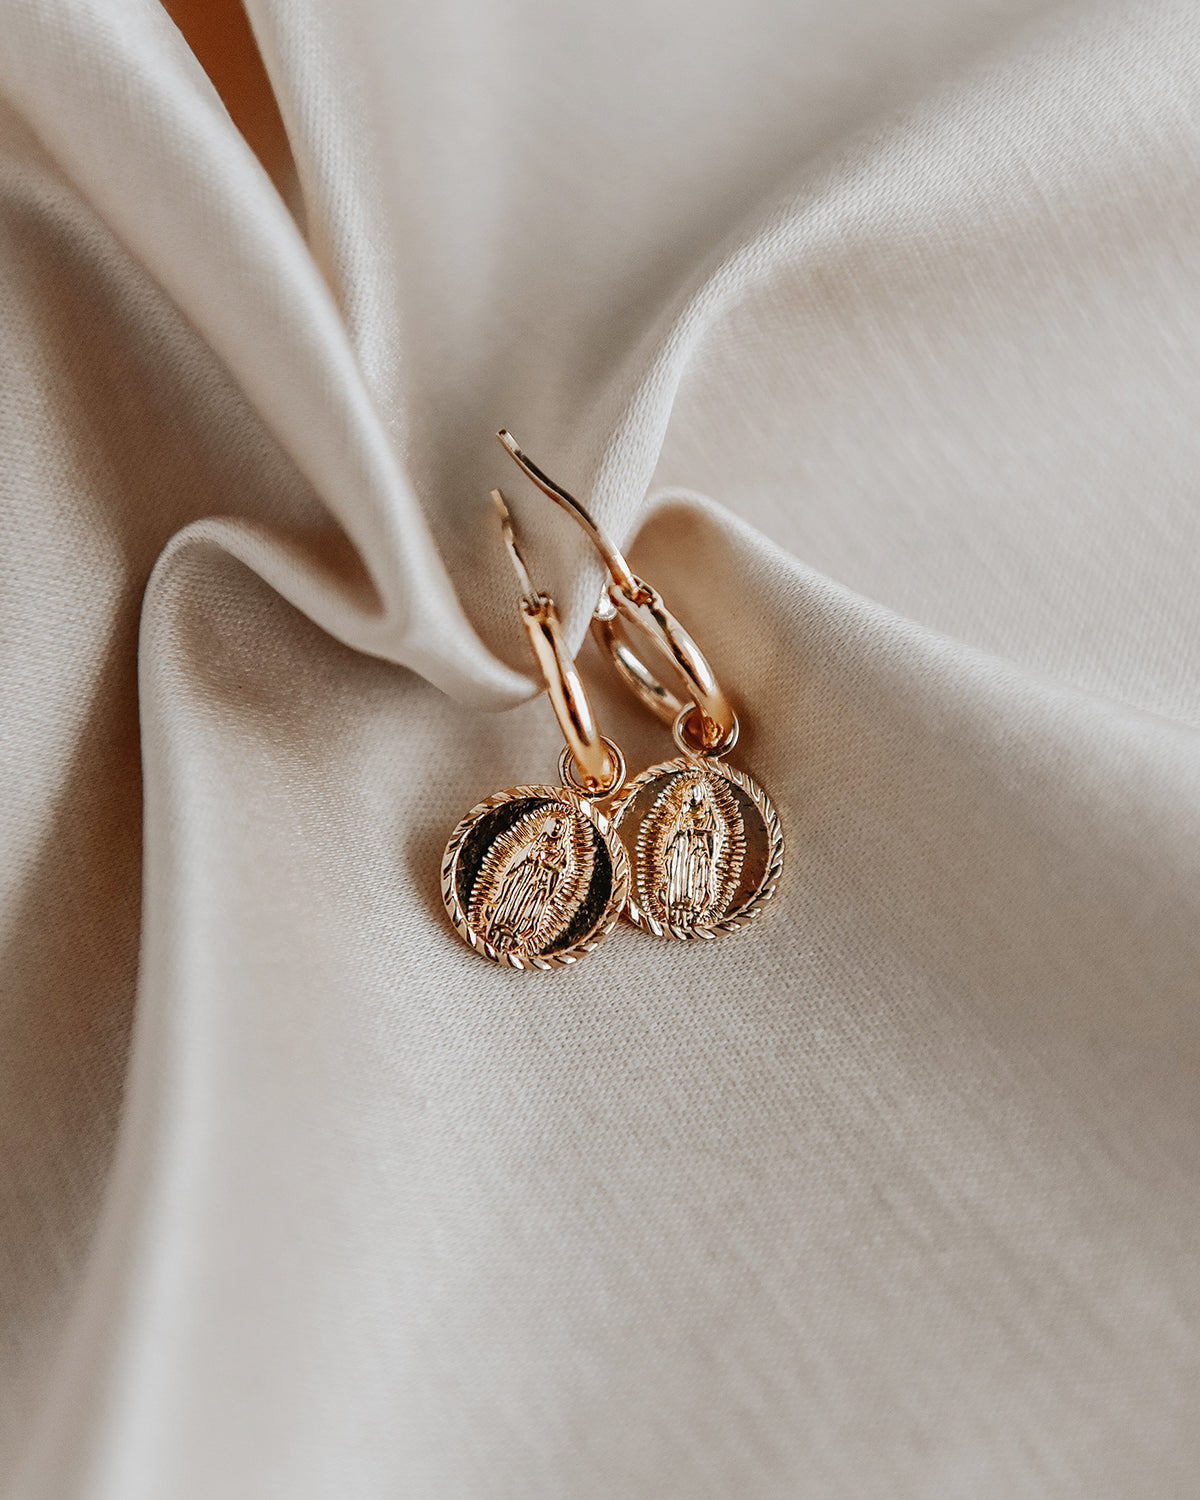 Image of Guadalupe Medal Hoop Earrings